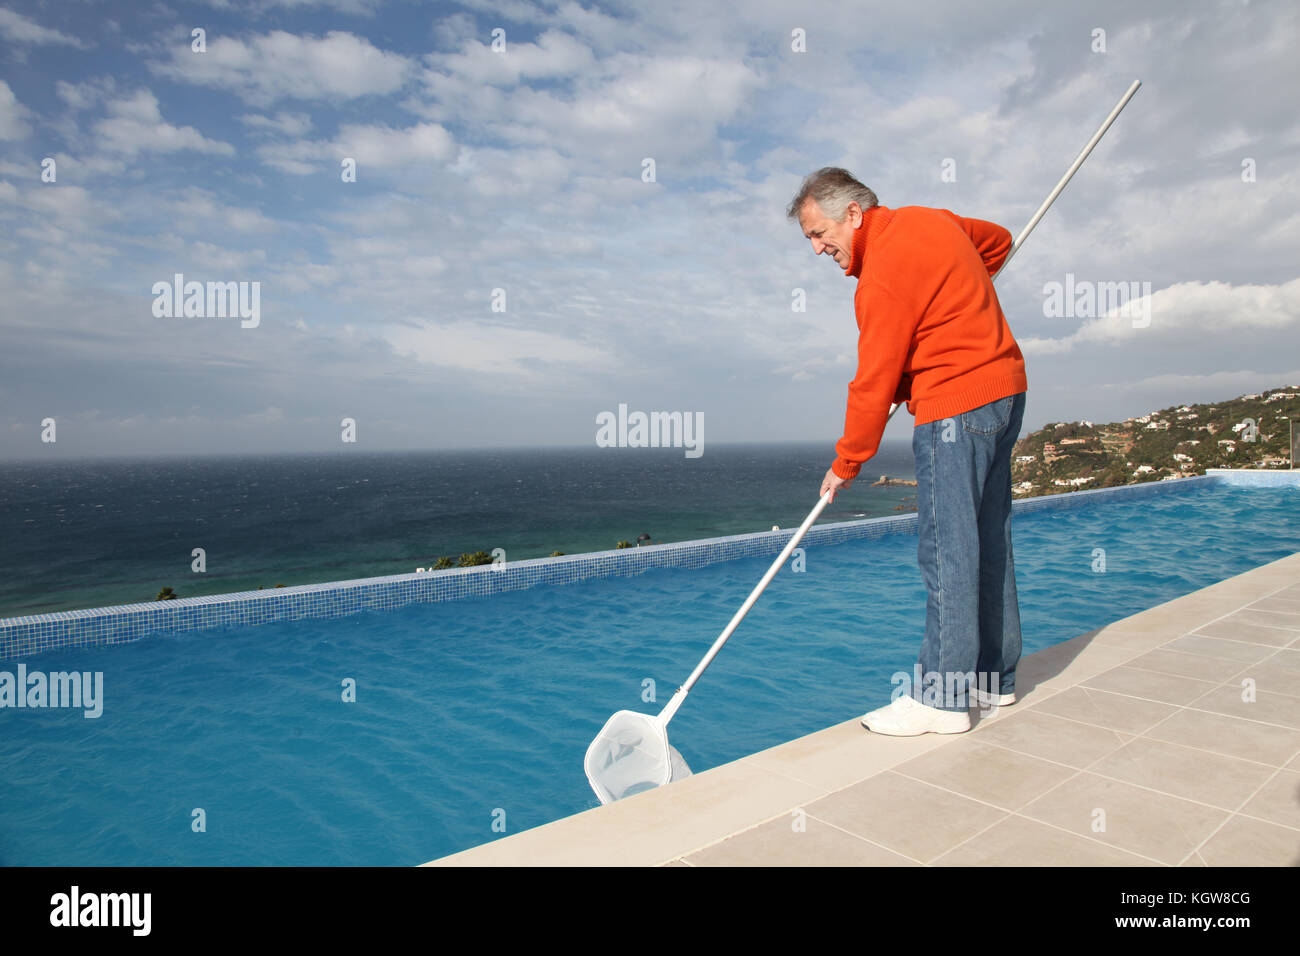 how to clean swimming pool